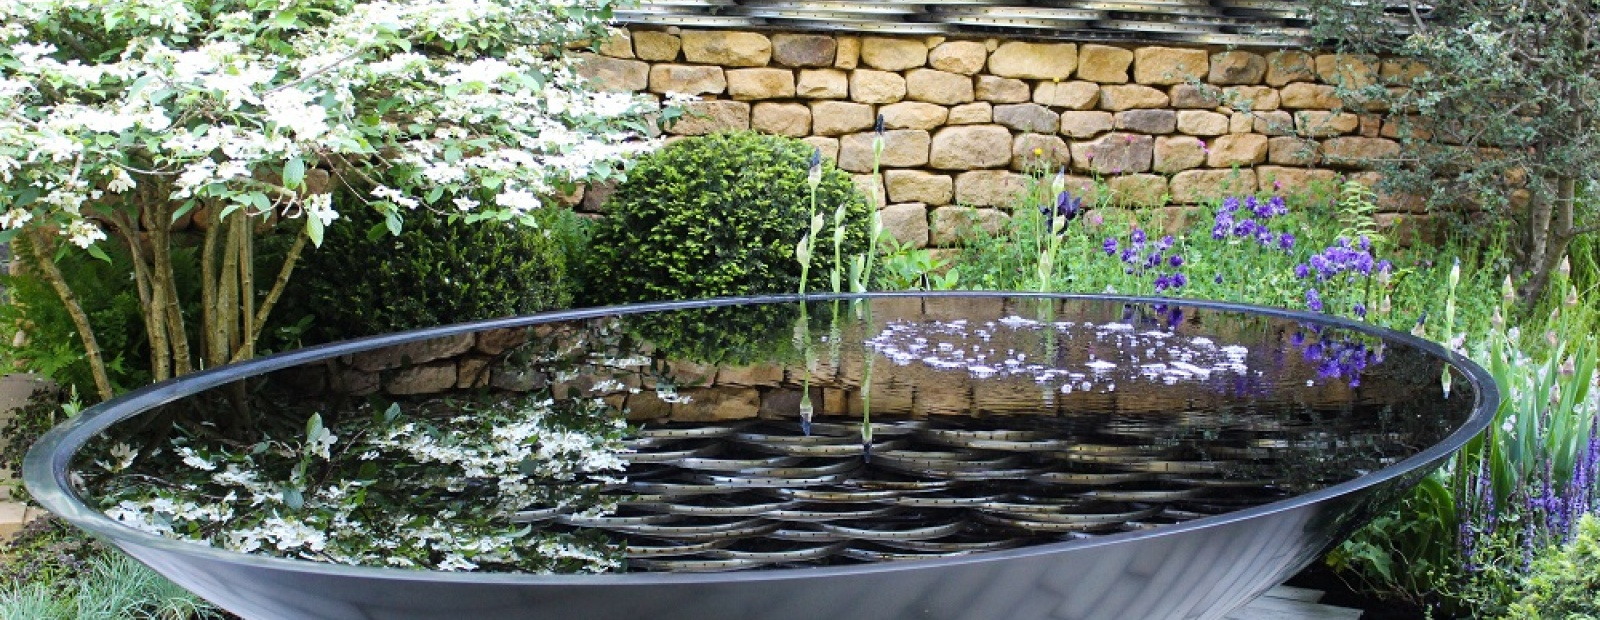 12 charming diy garden pond ideas style motivation for Diy garden pond ideas